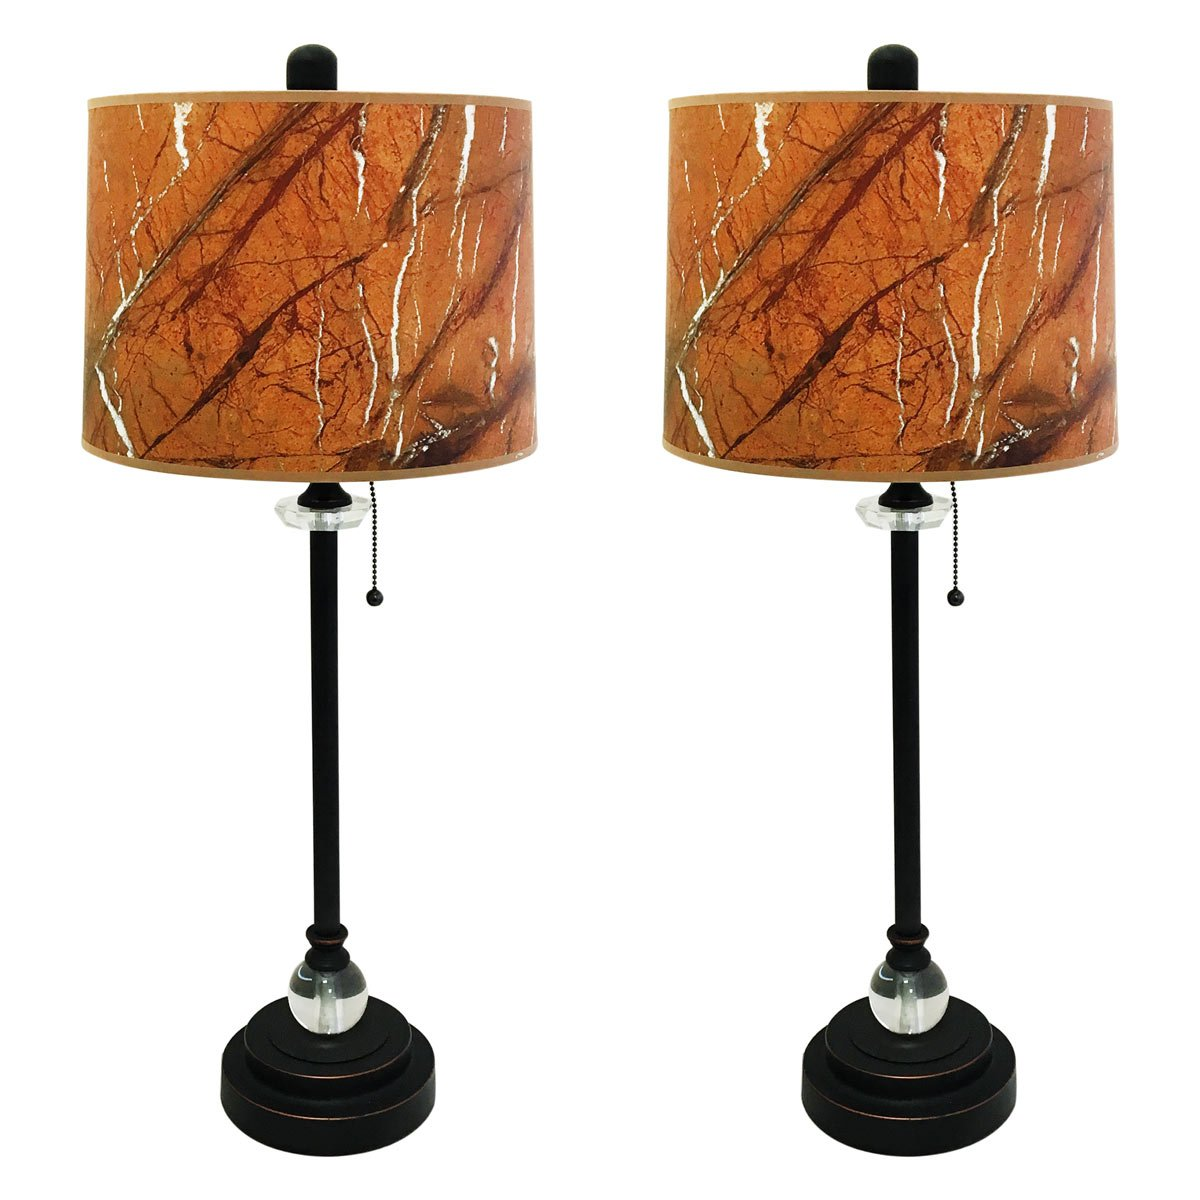 Royal Designs 28'' Crystal and Oil Rub Bronze Buffet Lamp with Orange Marble Texture Hardback Lamp Shade, Set of 2